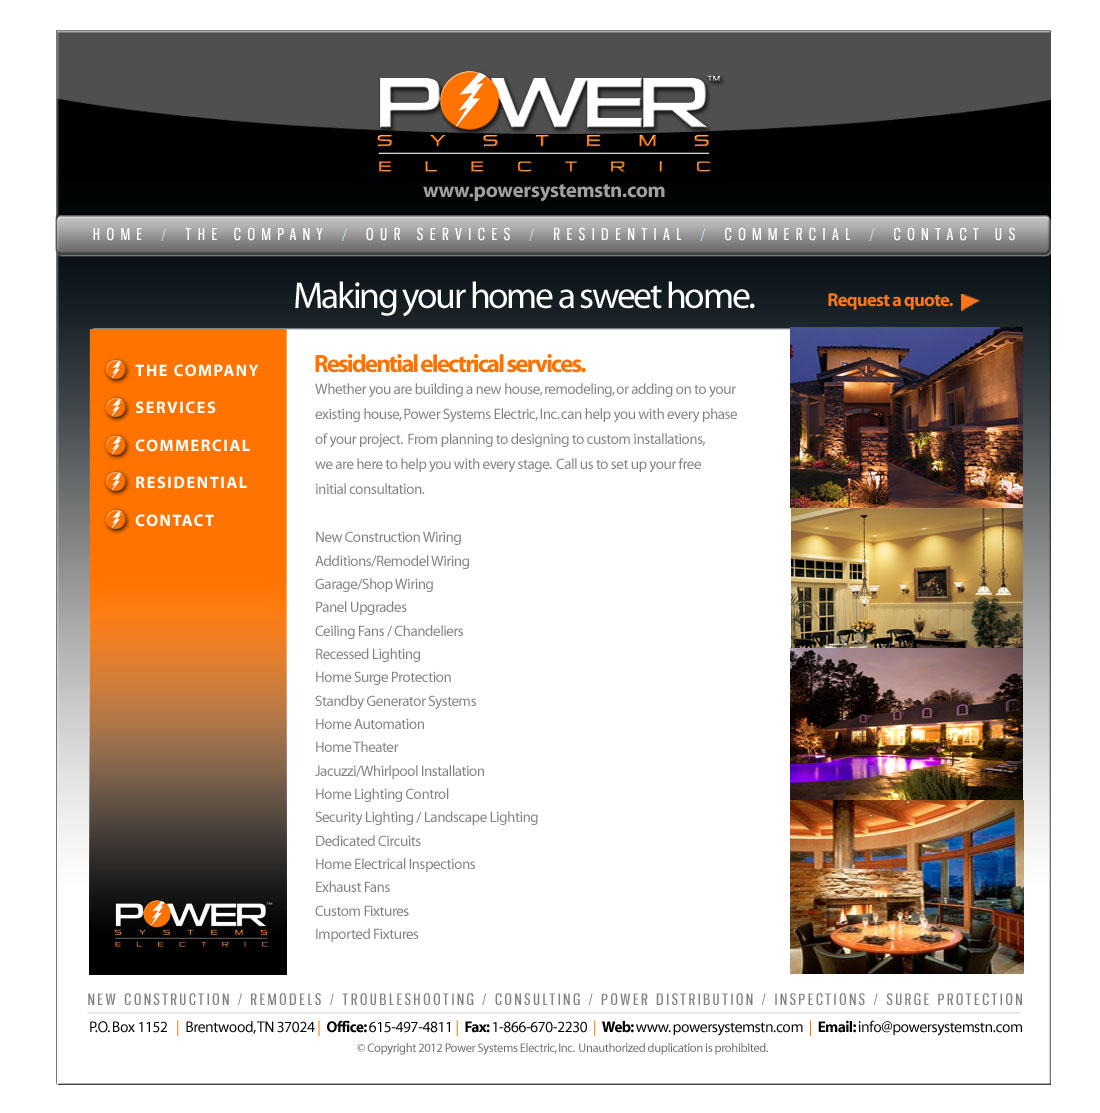 Power Systems Electric Tennessees Electrical Service Company New Construction Wiring Home Theater